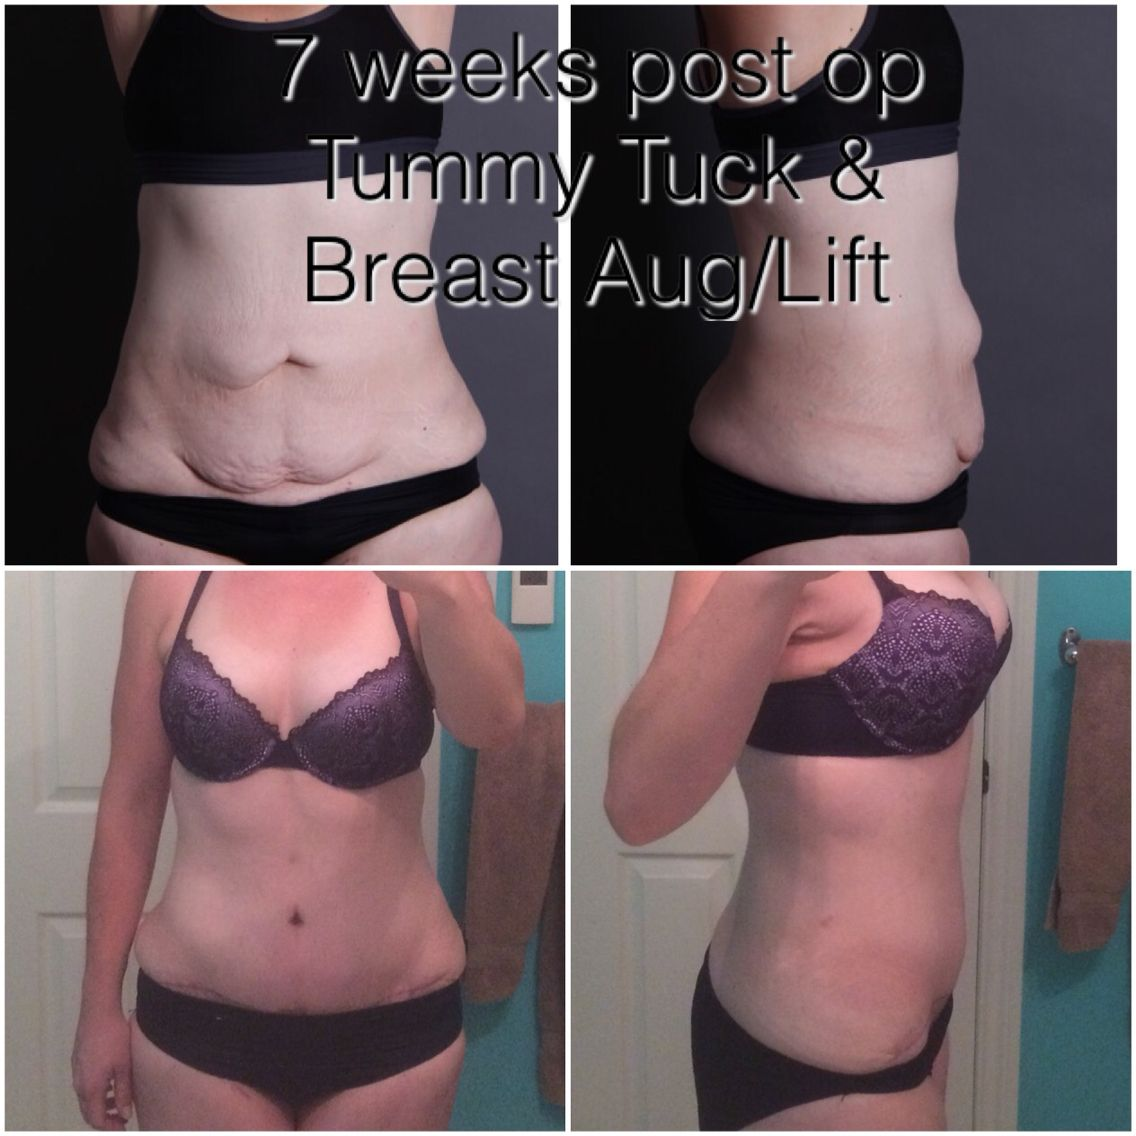 49 Days Post Op Tummy Tuck Witht Augmentation And Lift Plastic Surgery